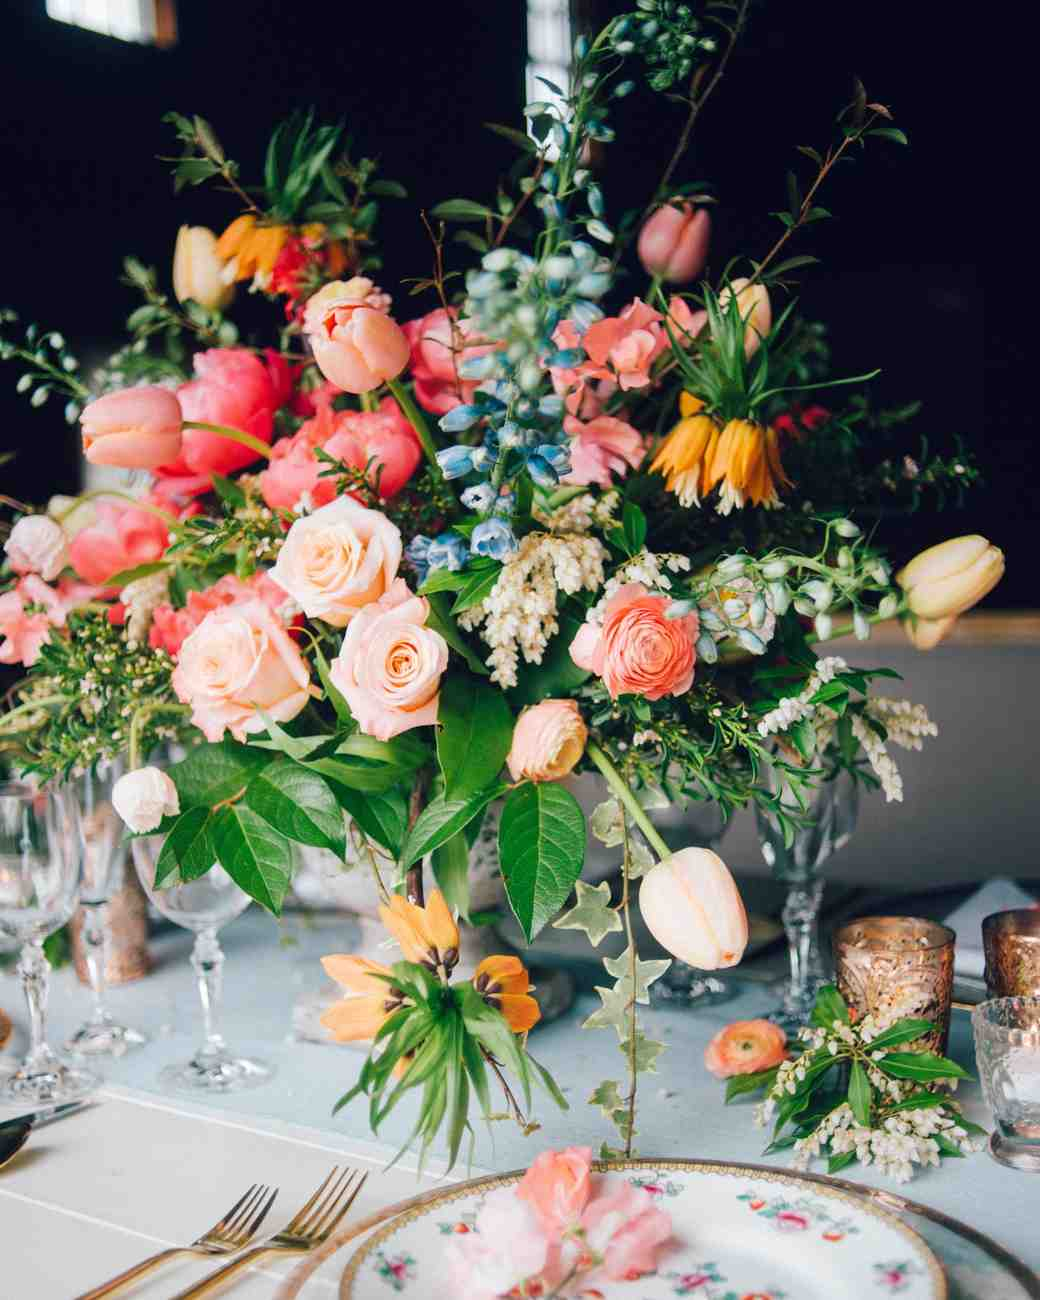 Spring Wedding Centerpiece Ideas: Spring Wedding Centerpieces We Love